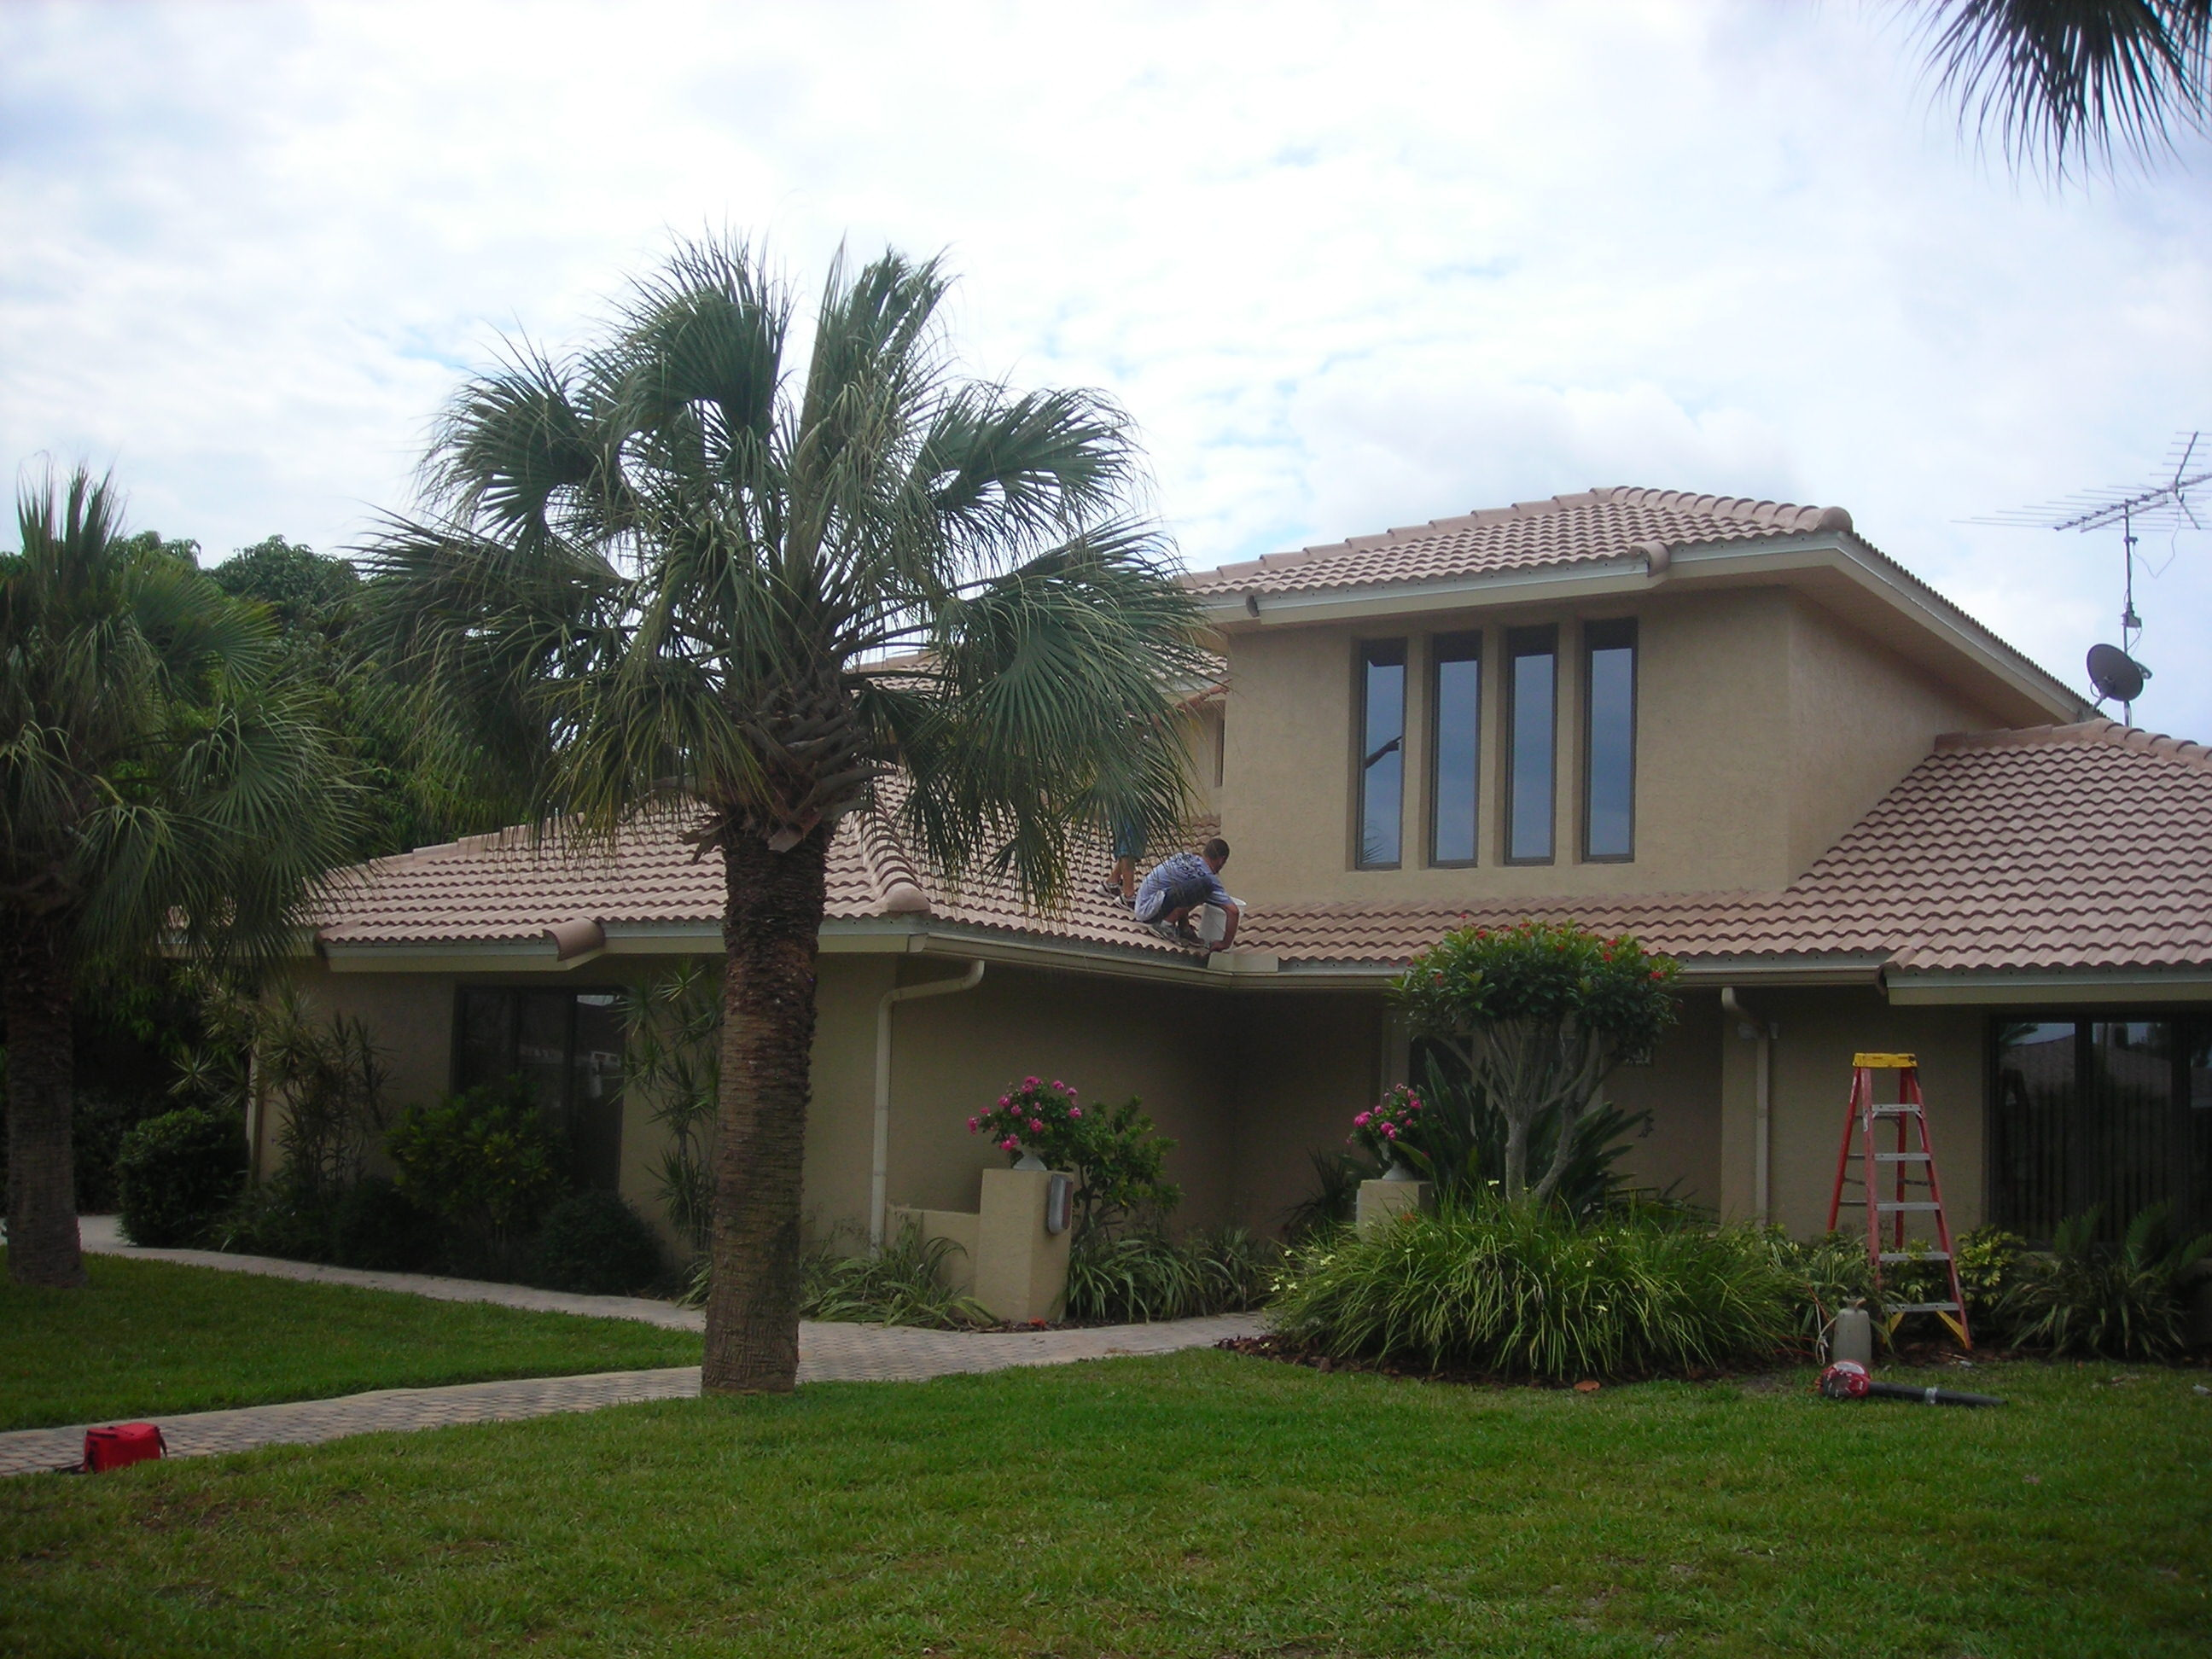 J K Behan Roofing image 12